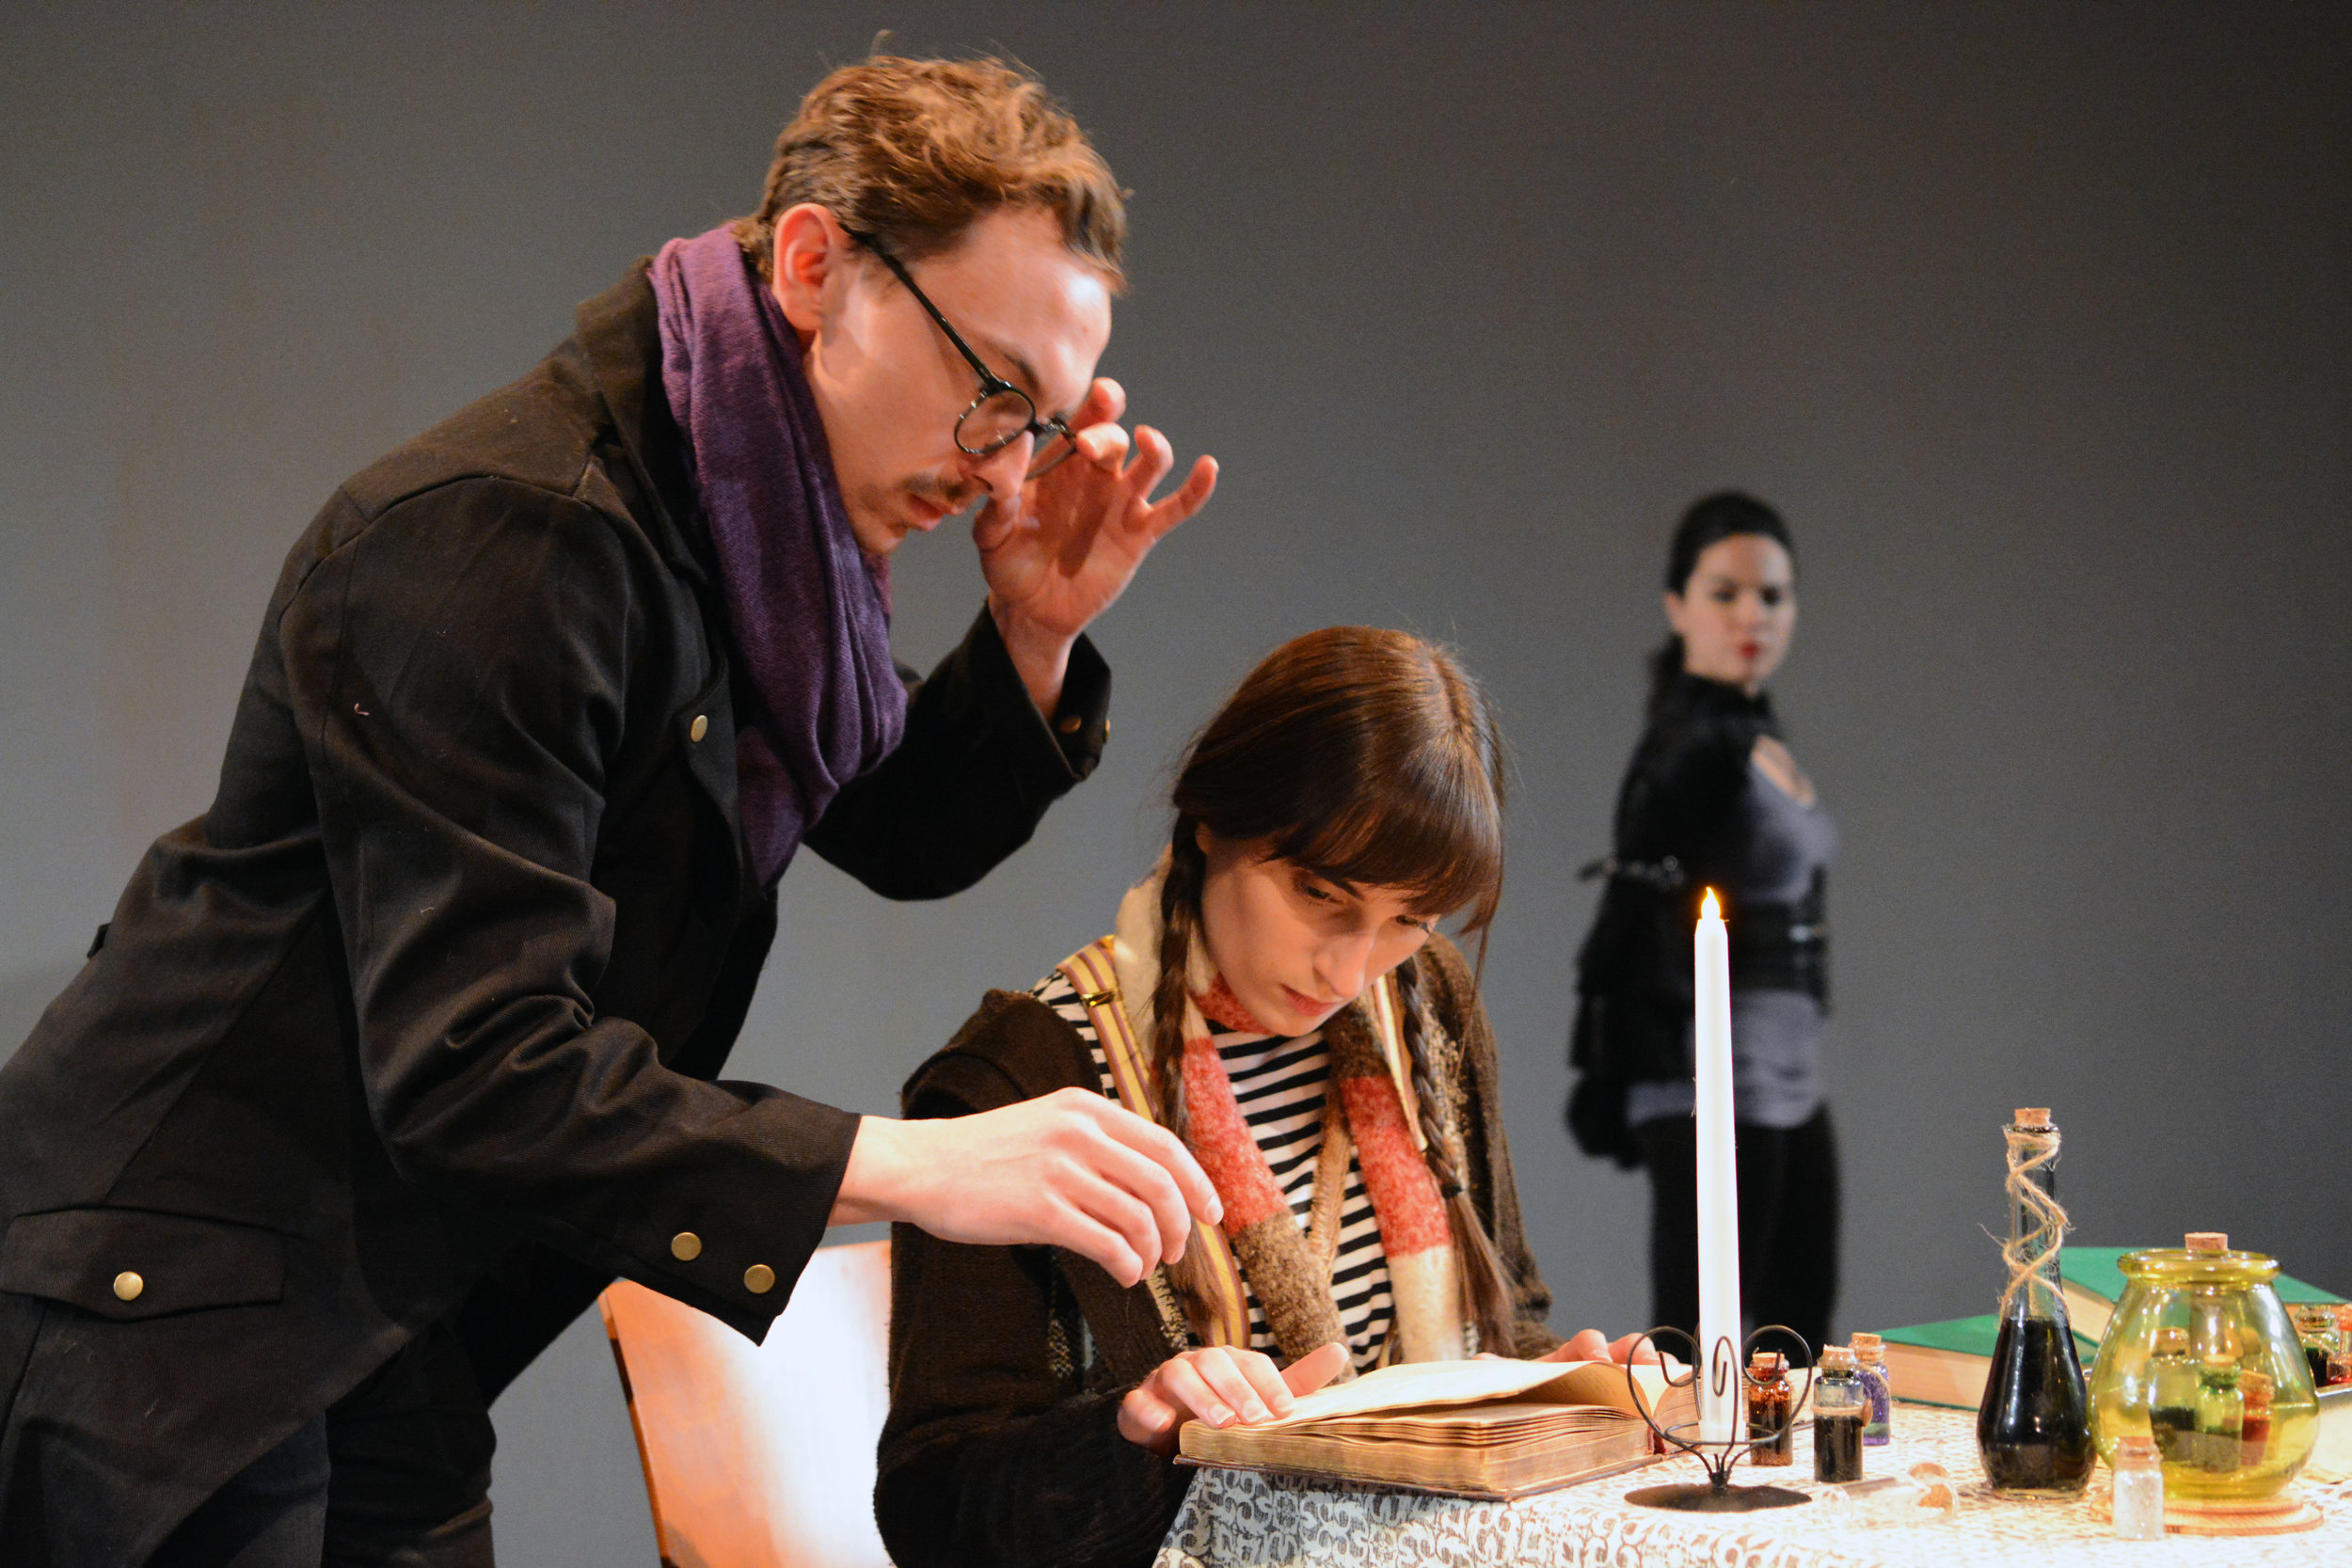 Press photos @ Dixon Place, featuring Brian Knoebel as Professor Schwartz, Jennifer Paldino as Isidora, and Justine Magnusson as Prime Minister